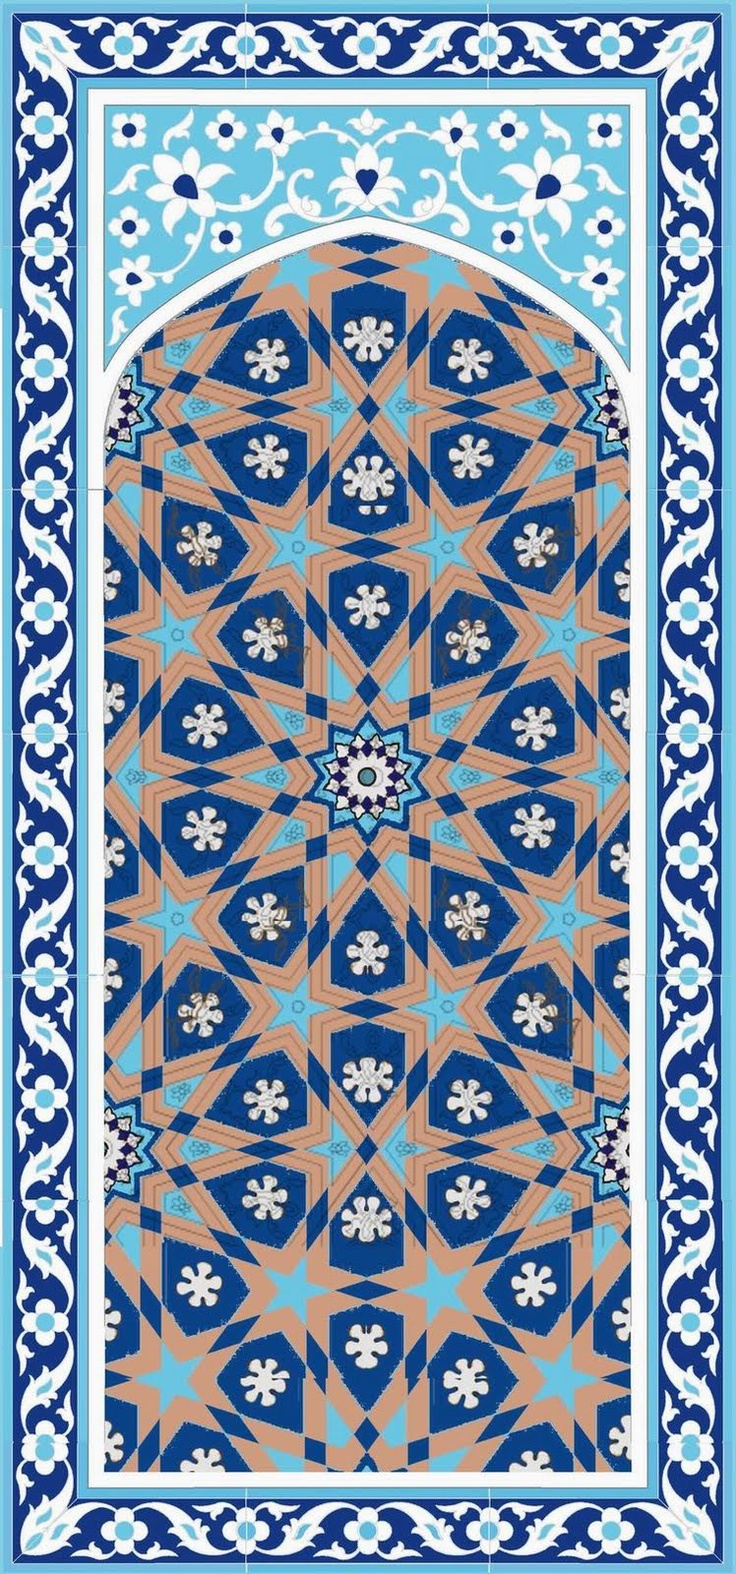 110 best islamic patterns images on Pinterest